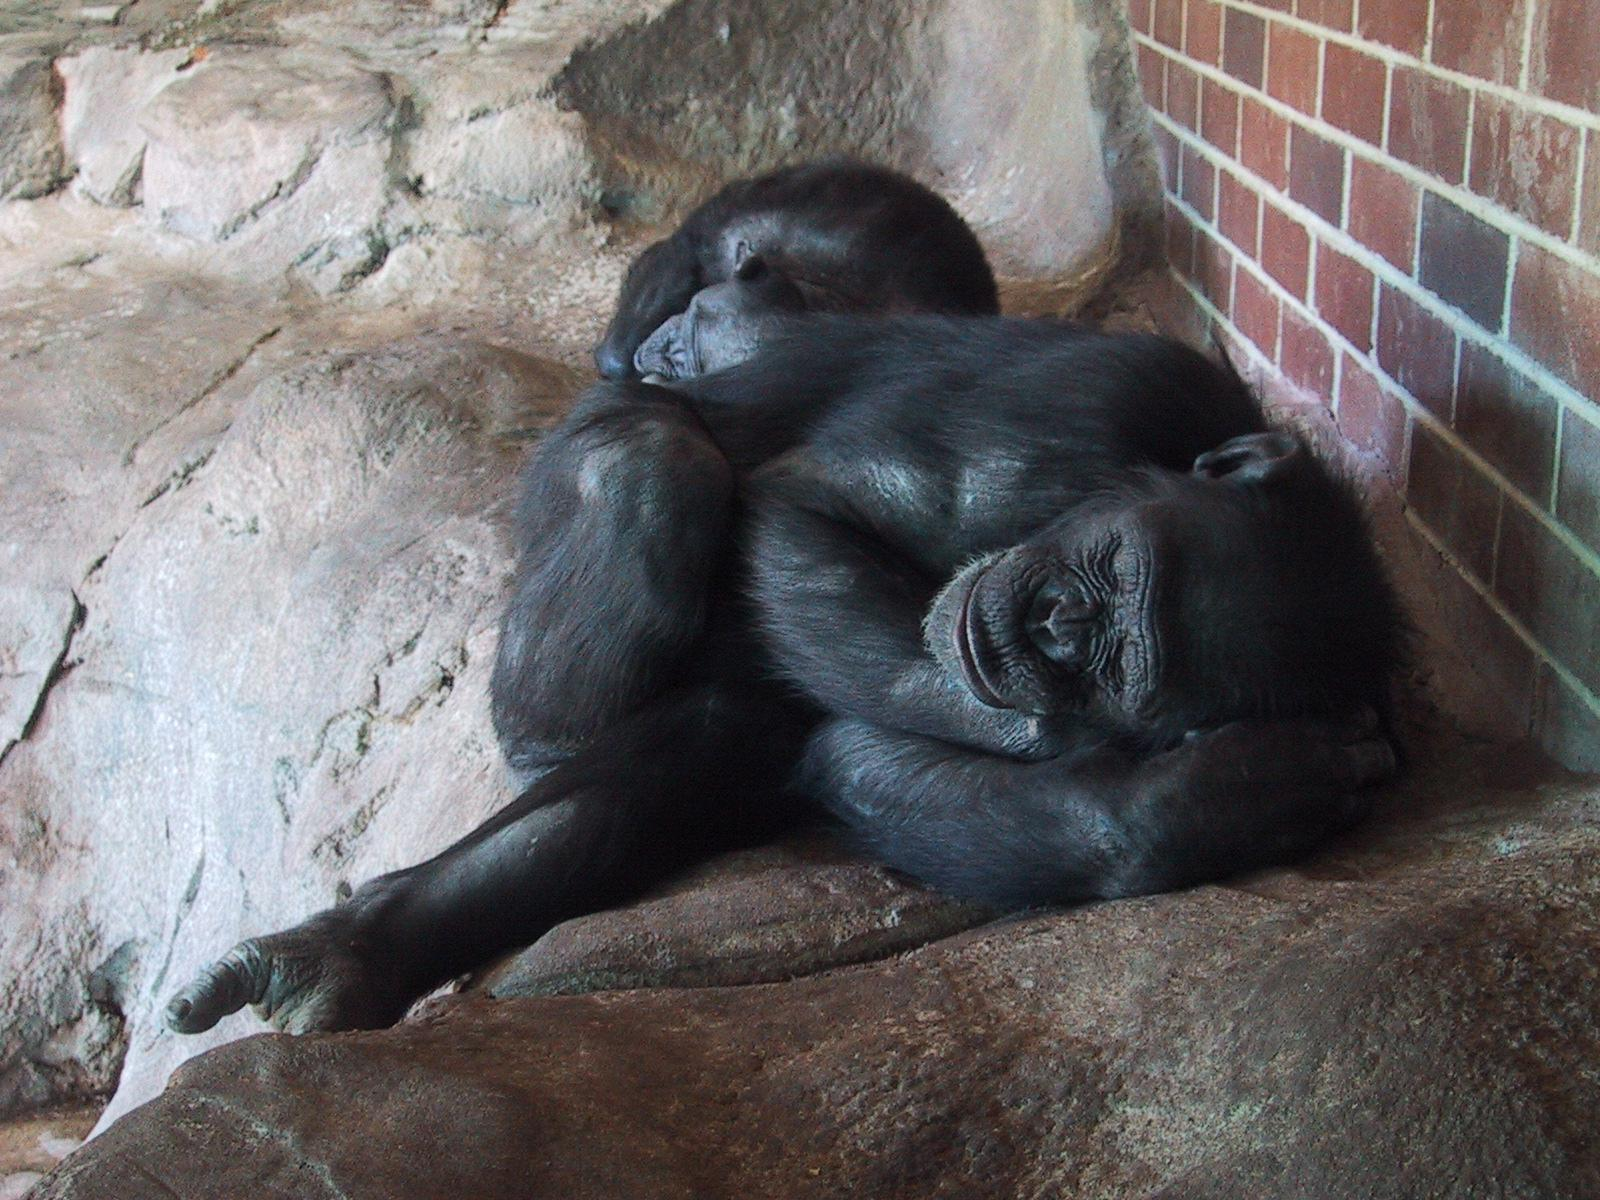 sleeping apes at the zoo in sydney future arsdigit greenspun philip